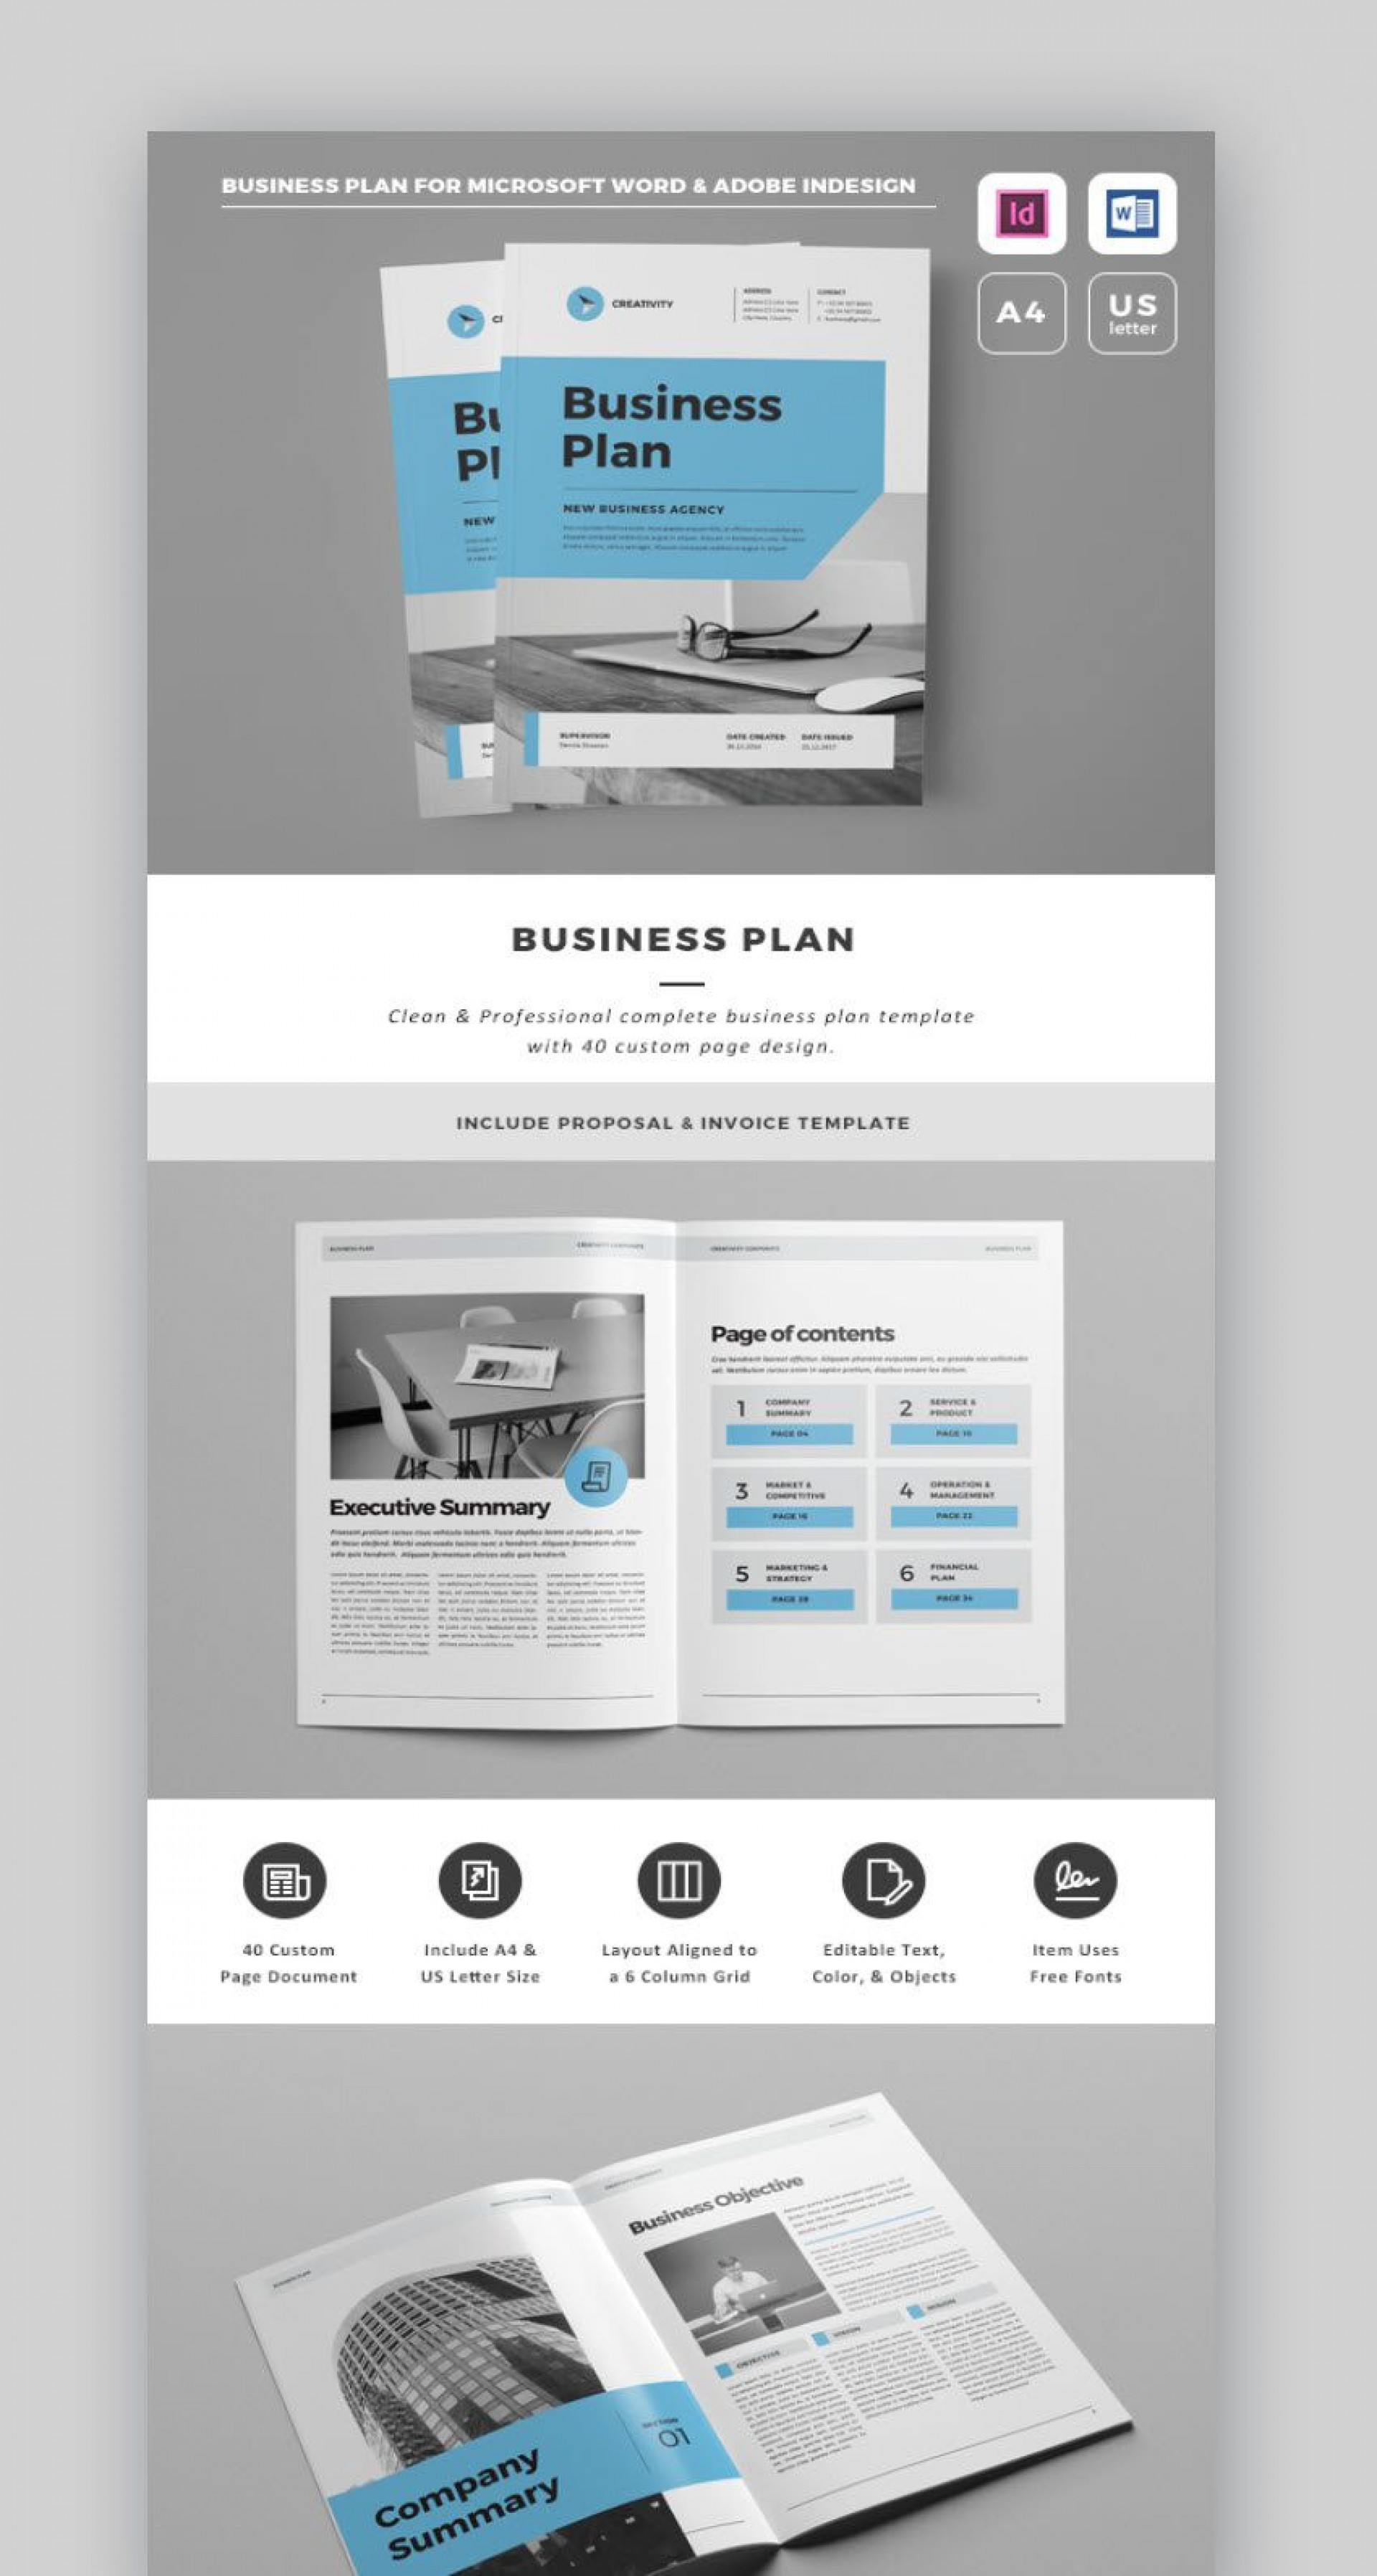 008 Staggering Website Development Proposal Template Word High Definition  Free1920